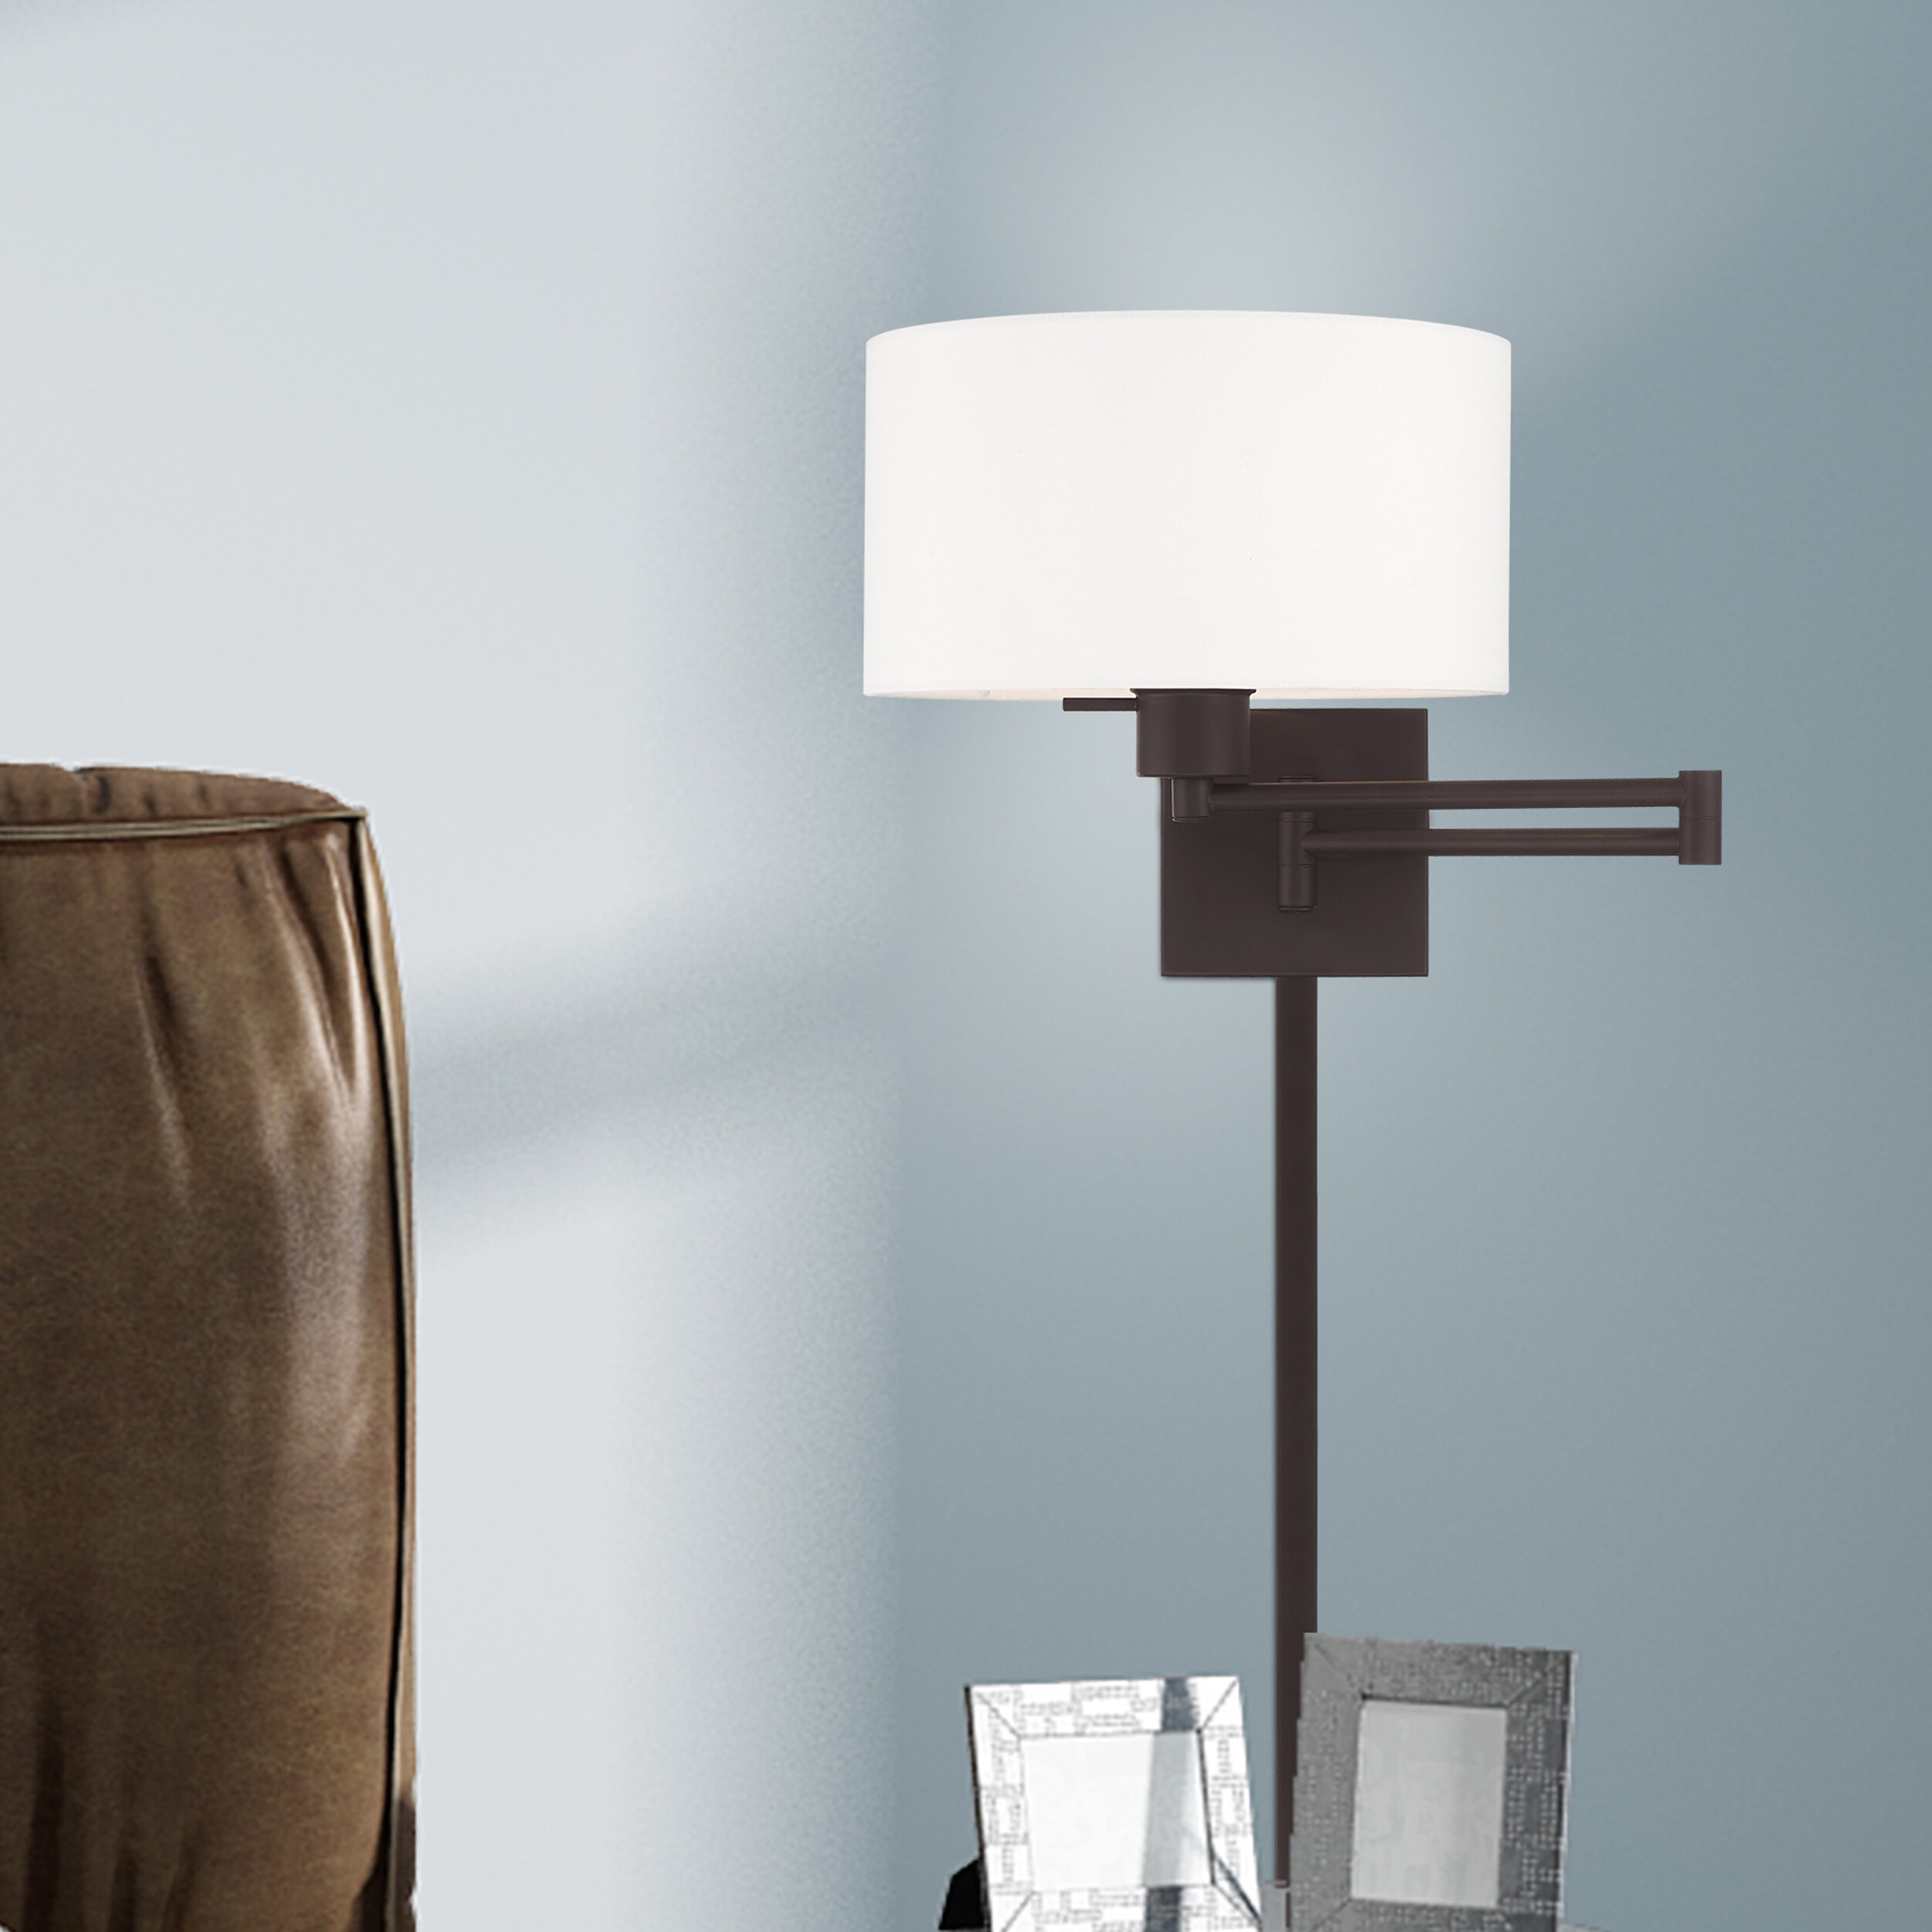 Dimmable Swing Arm Wall Sconces You Ll Love In 2021 Wayfair